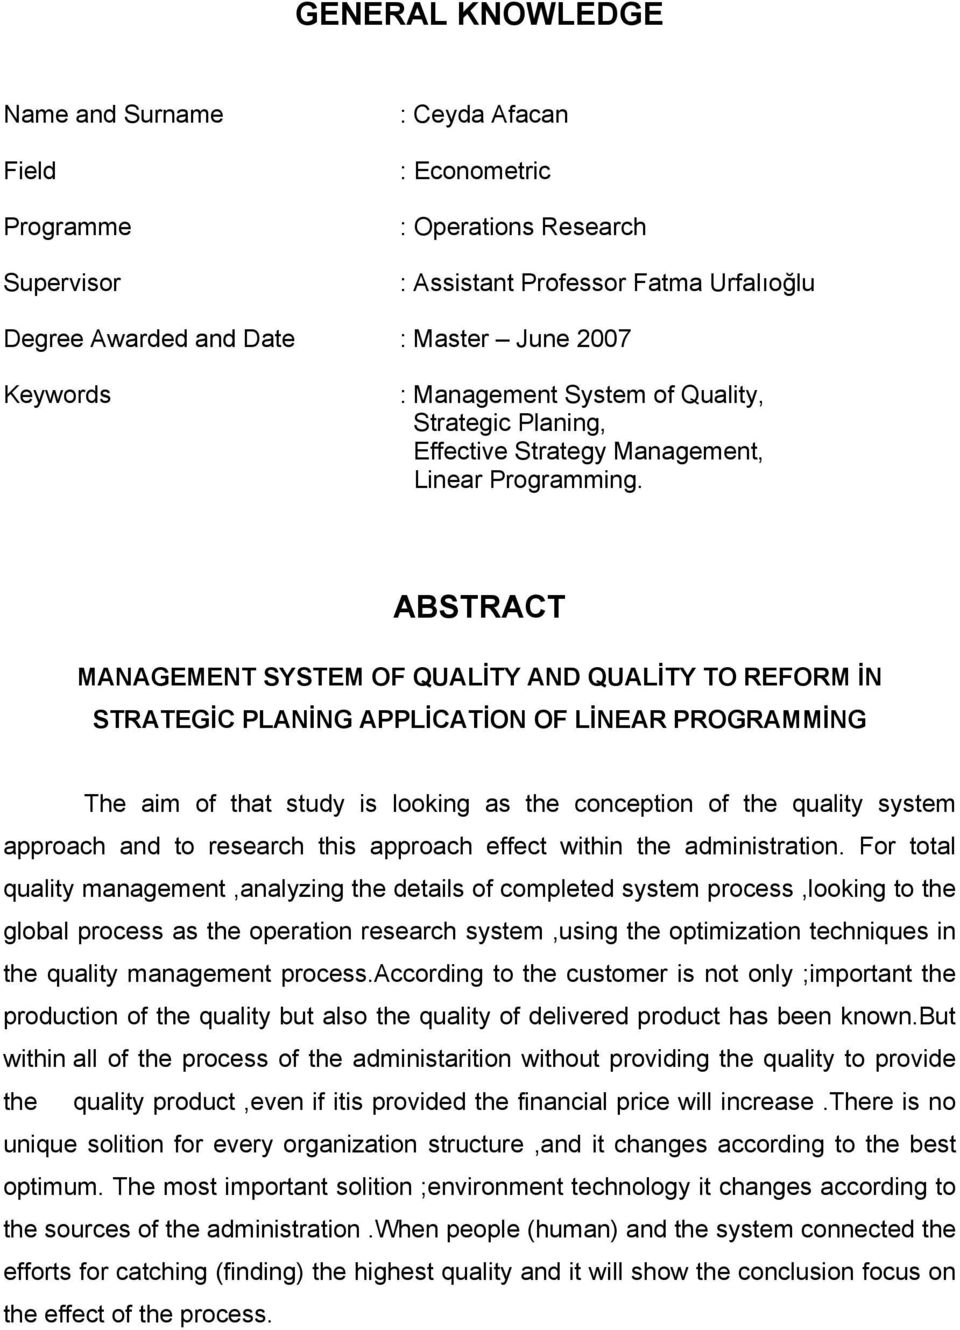 ABSTRACT MANAGEMENT SYSTEM OF QUALİTY AND QUALİTY TO REFORM İN STRATEGİC PLANİNG APPLİCATİON OF LİNEAR PROGRAMMİNG The aim of that study is looking as the conception of the quality system approach